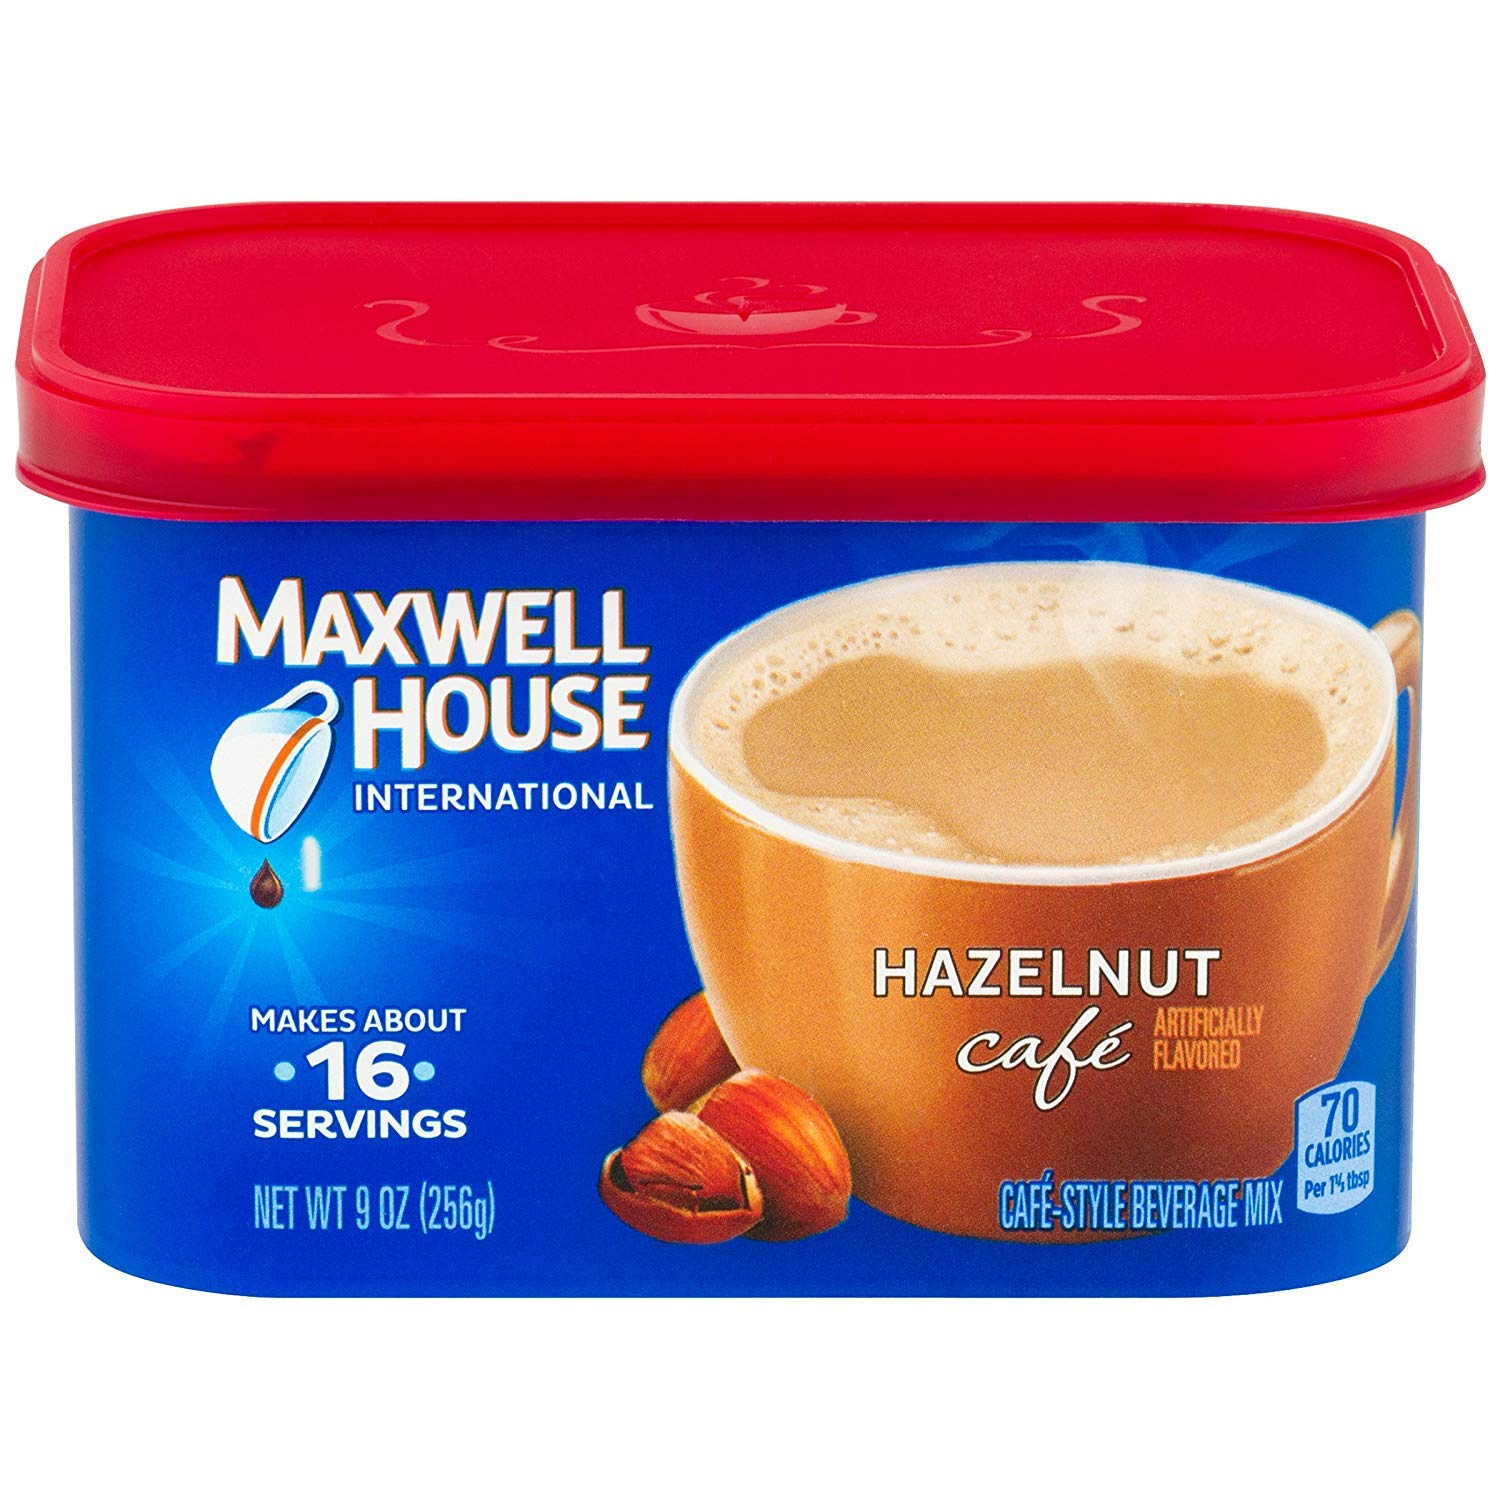 Maxwell House International Hazelnut Instant Coffee, 9 oz Canister (Pack of 19) (Pack of 19)